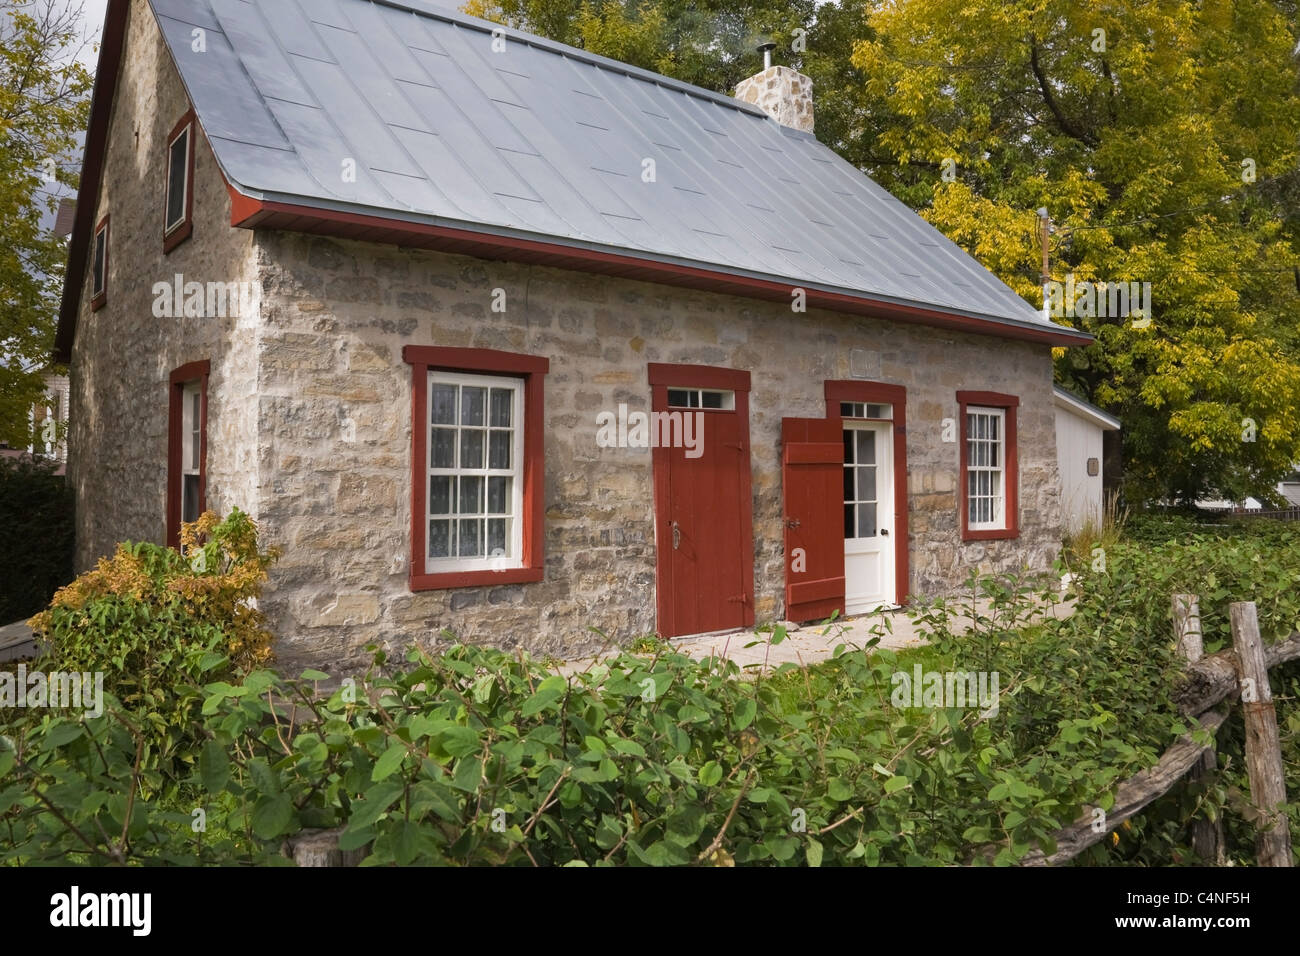 Exterior Of 19th Century Fieldstone Cottage Style Home In Autumn, Quebec,  Canada